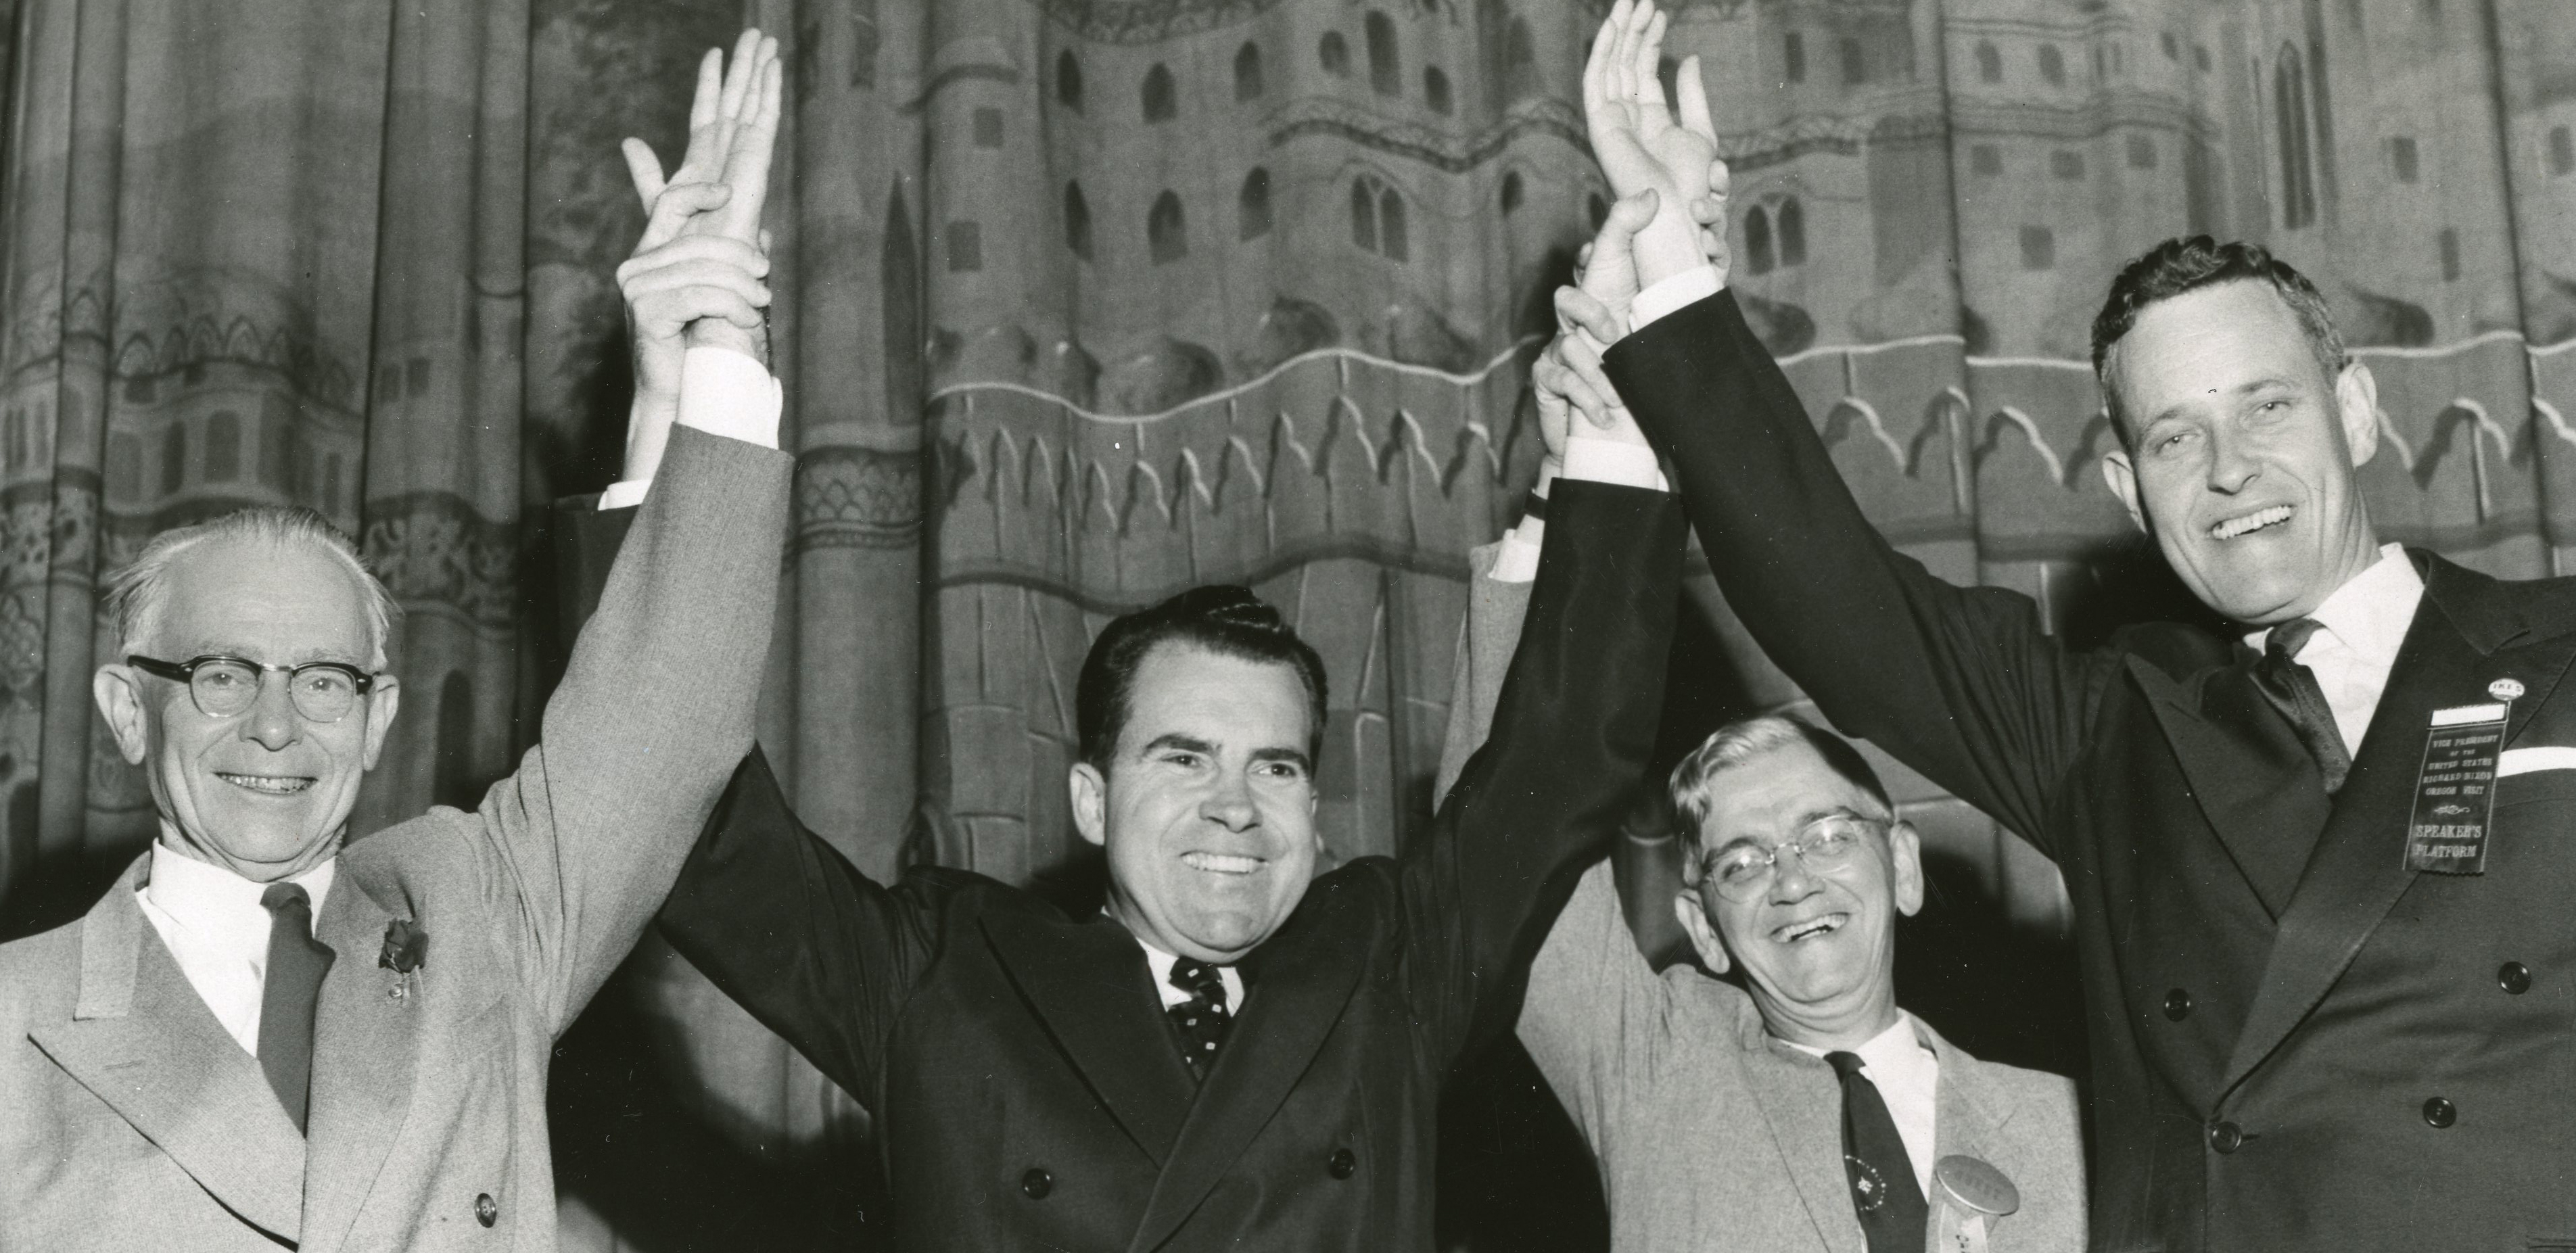 McCall and Nixon, 1954, at an Oregon masonic temple